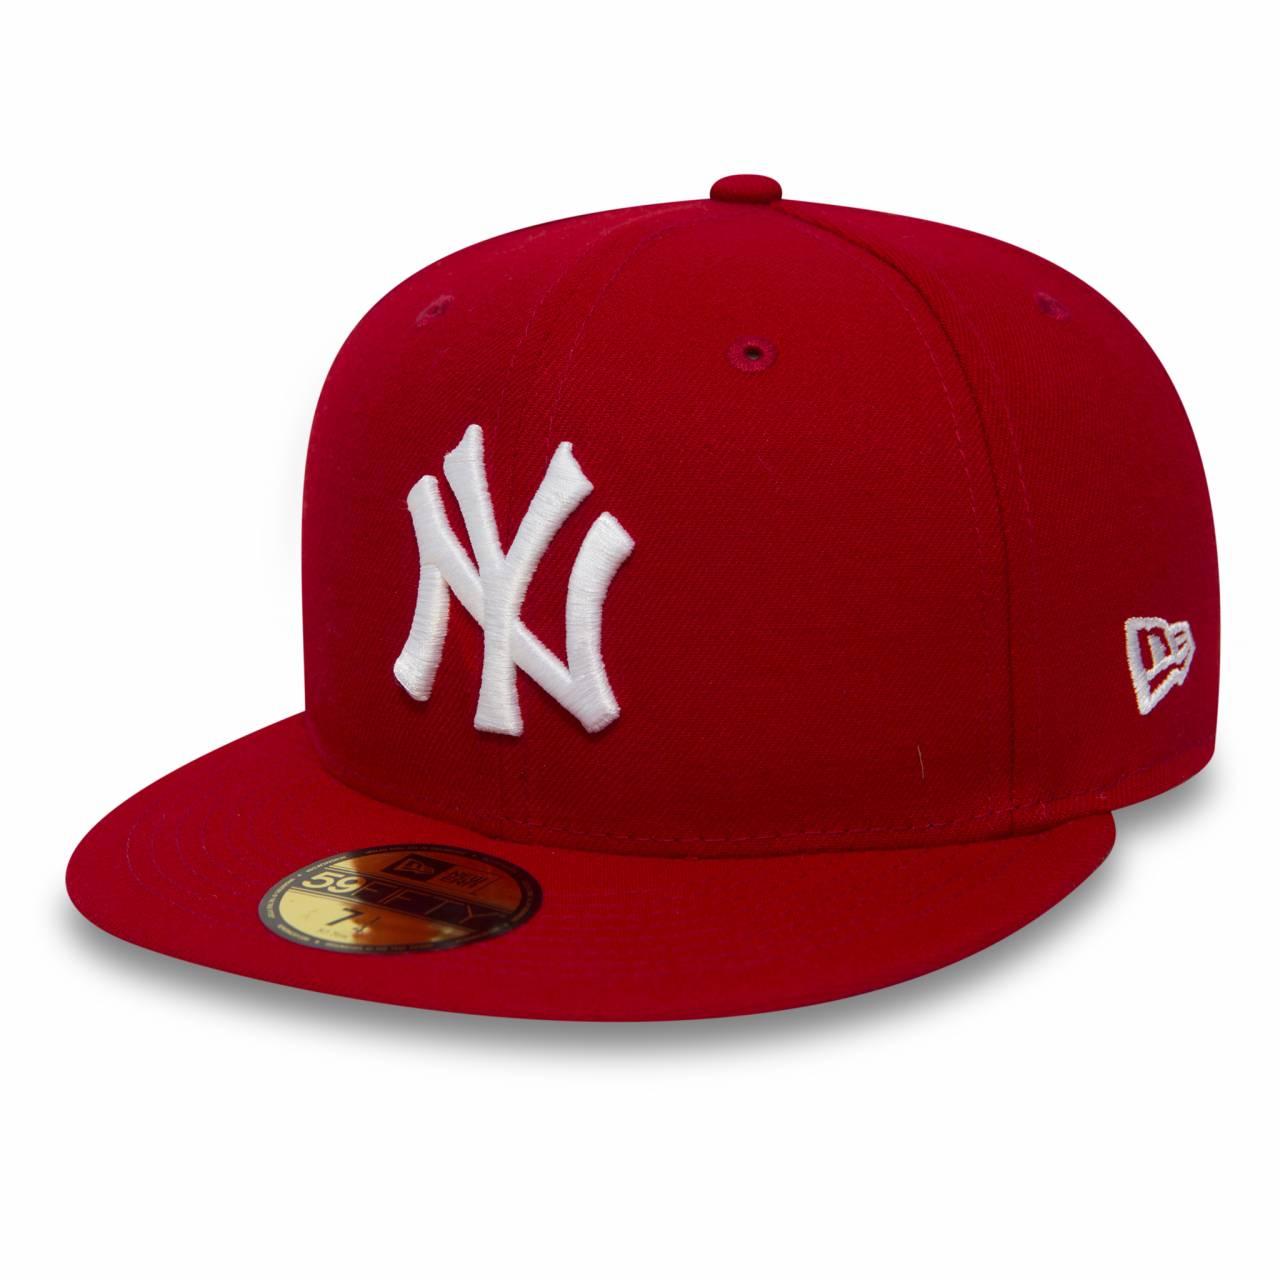 59FIFTY NEW YORK YANKEES RED/WHITE FITTED CAP